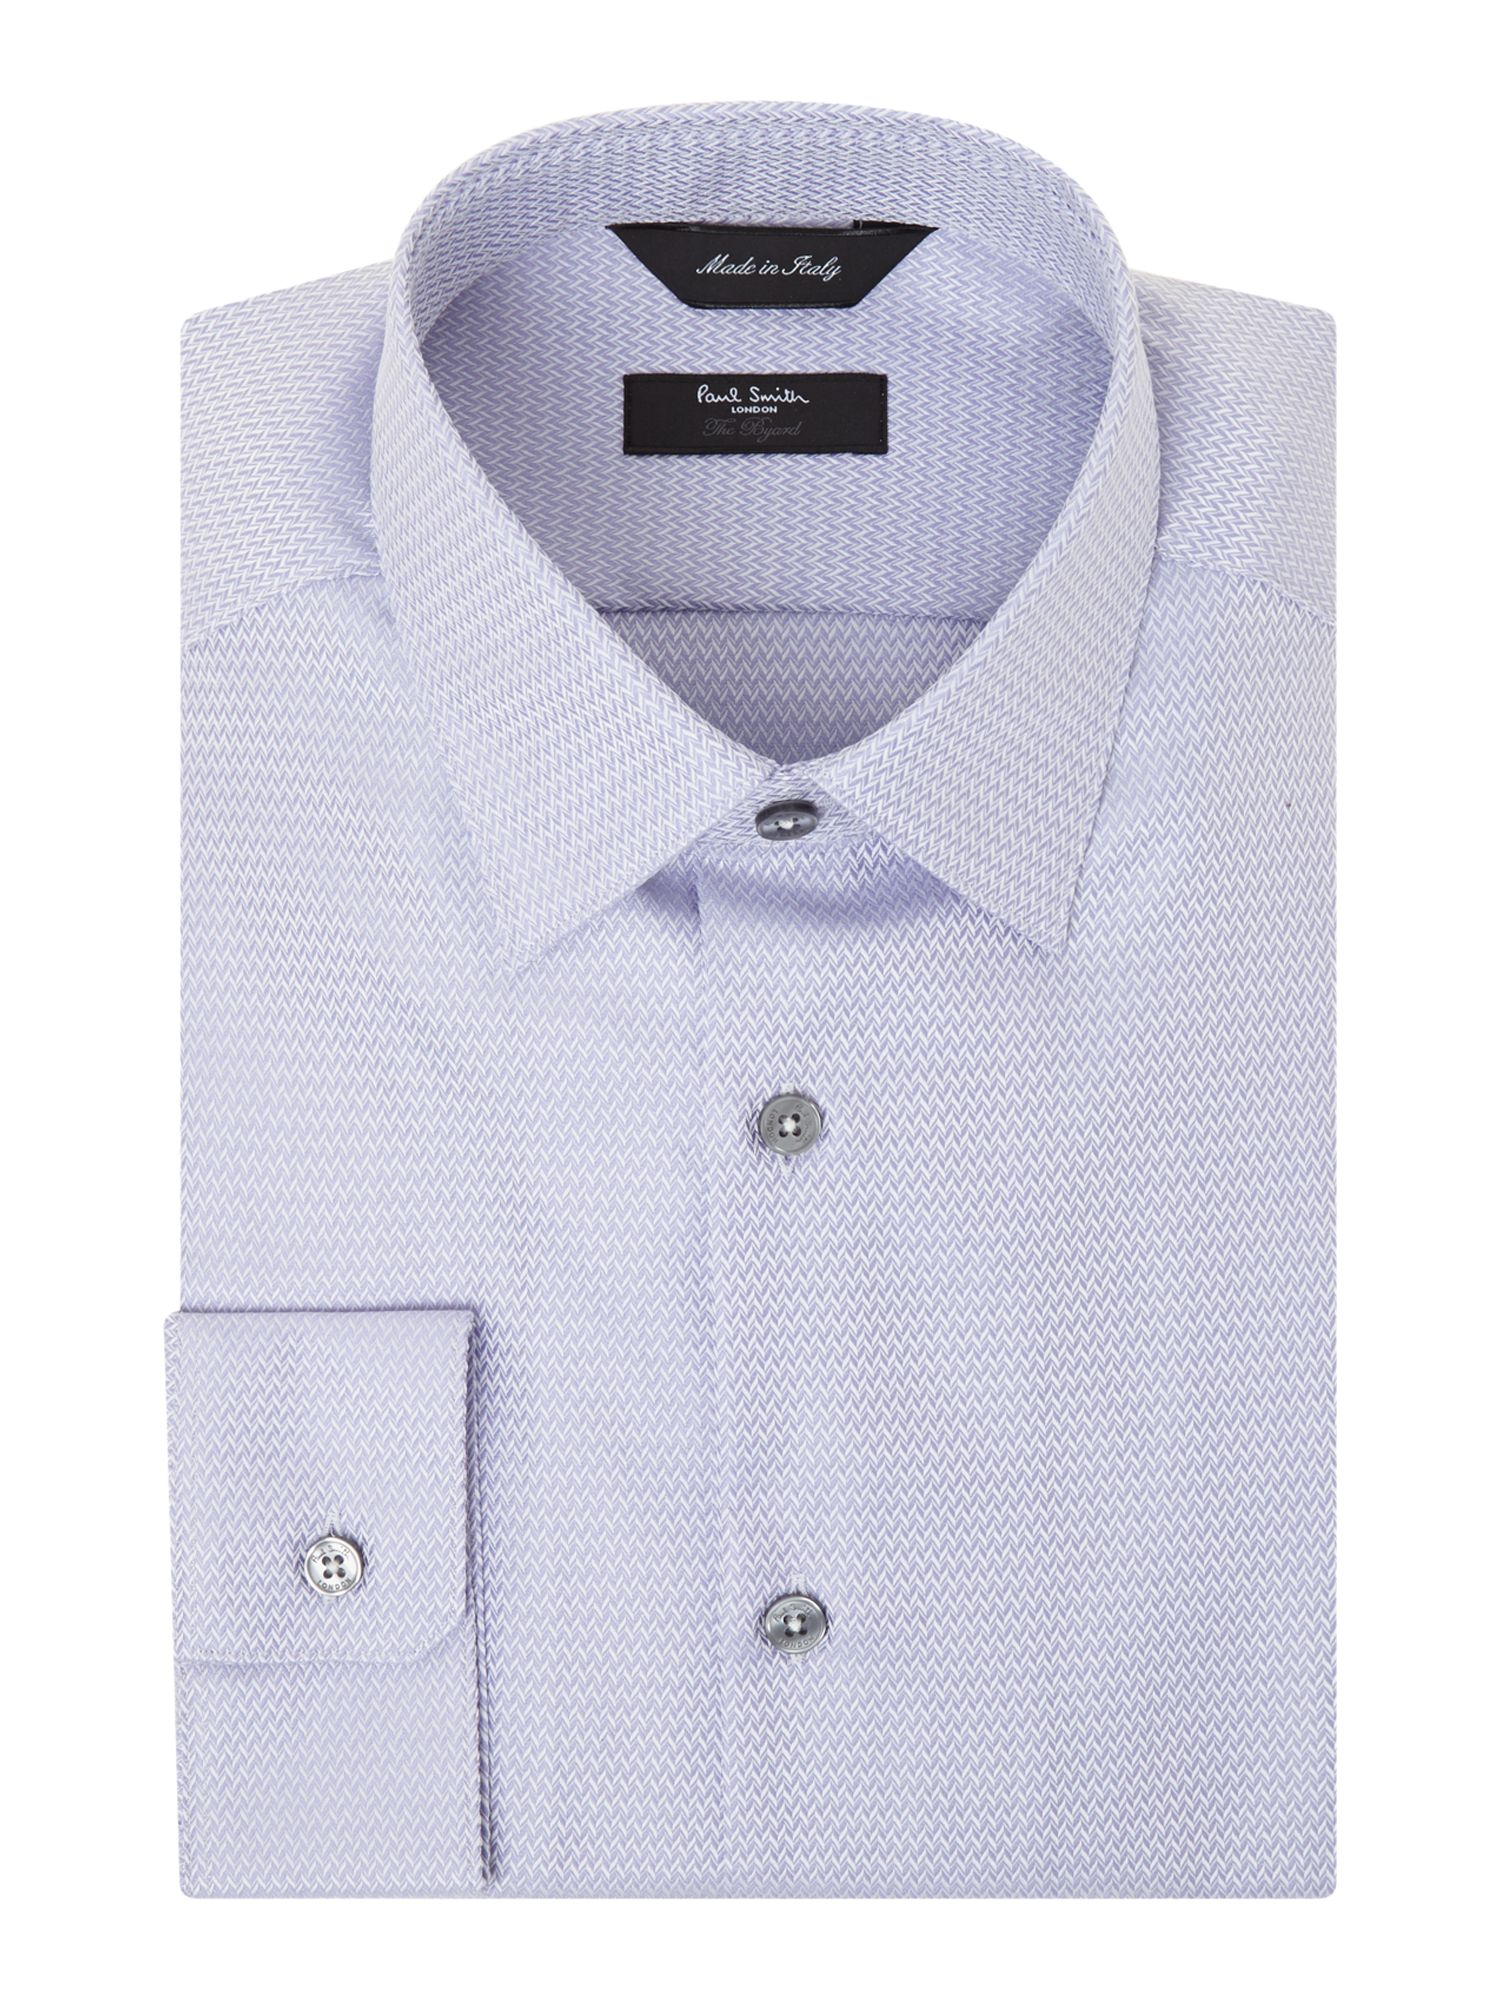 Slim fit herringbone jacquard shirt